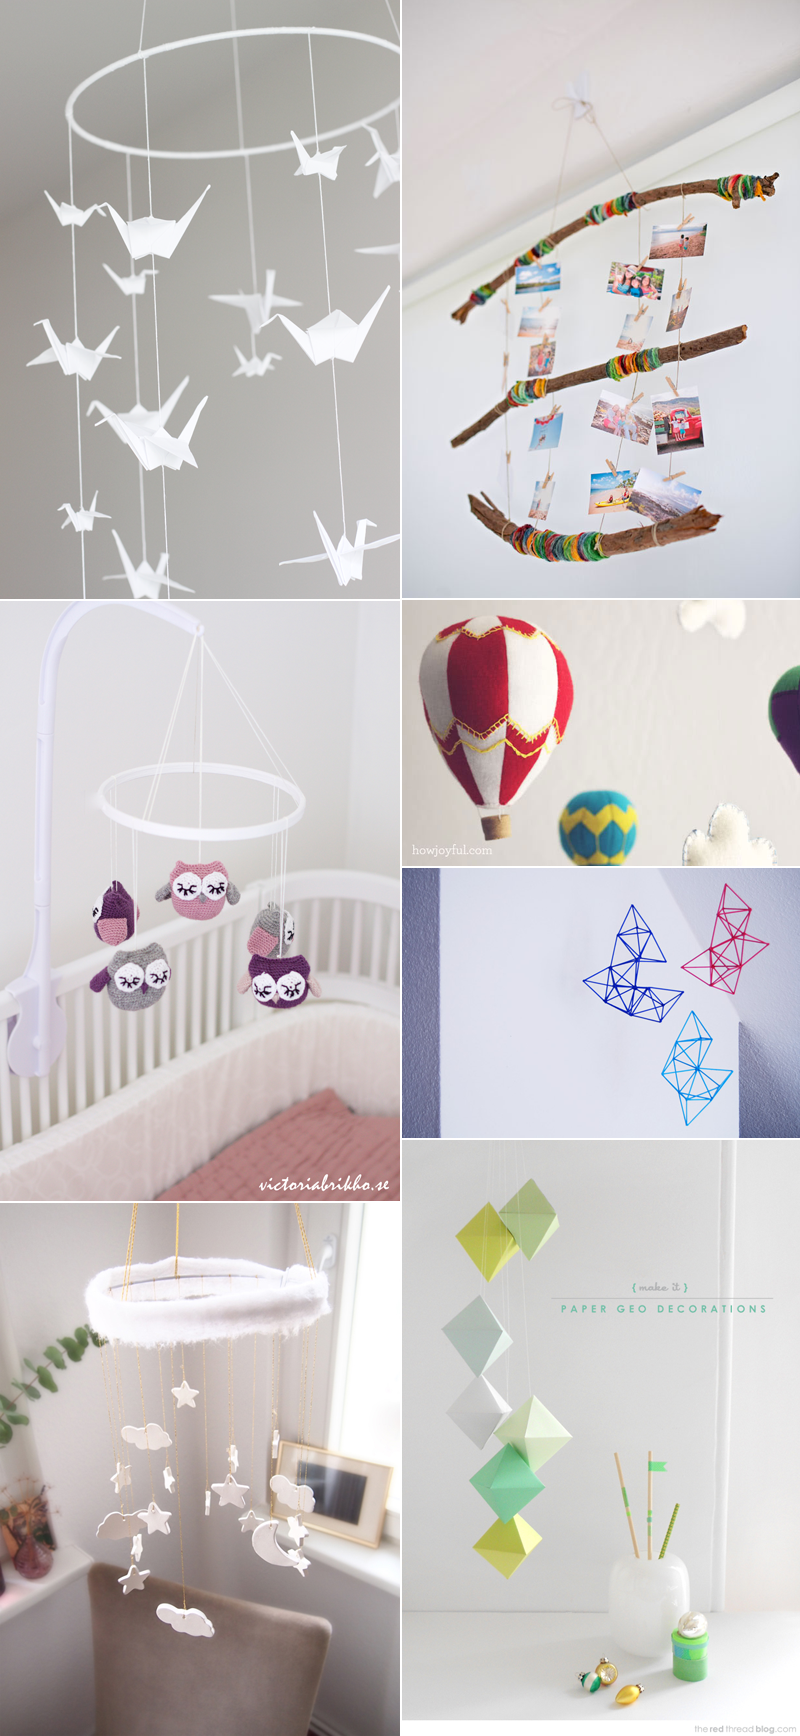 Inspiration für Mobiles | we love handmade